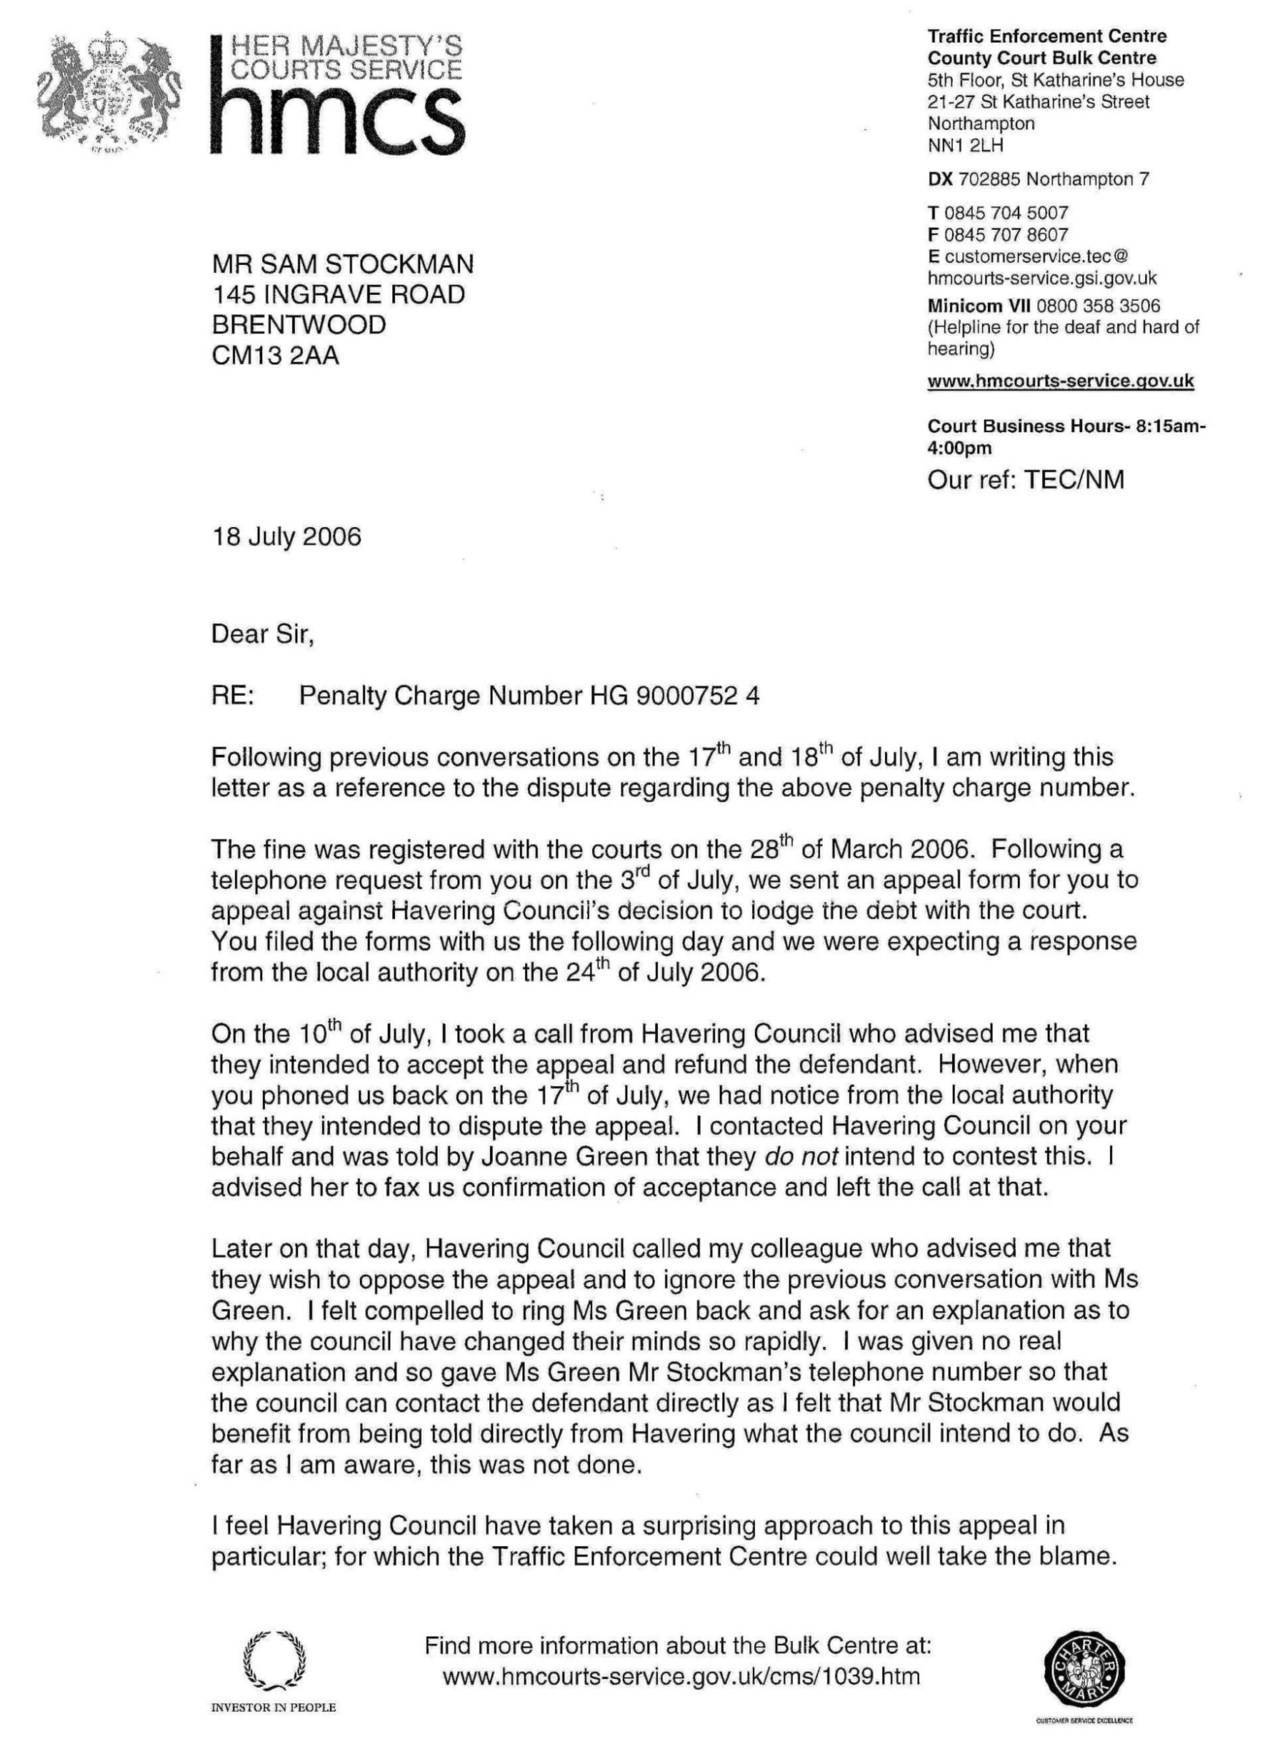 appeal parking ticket letter